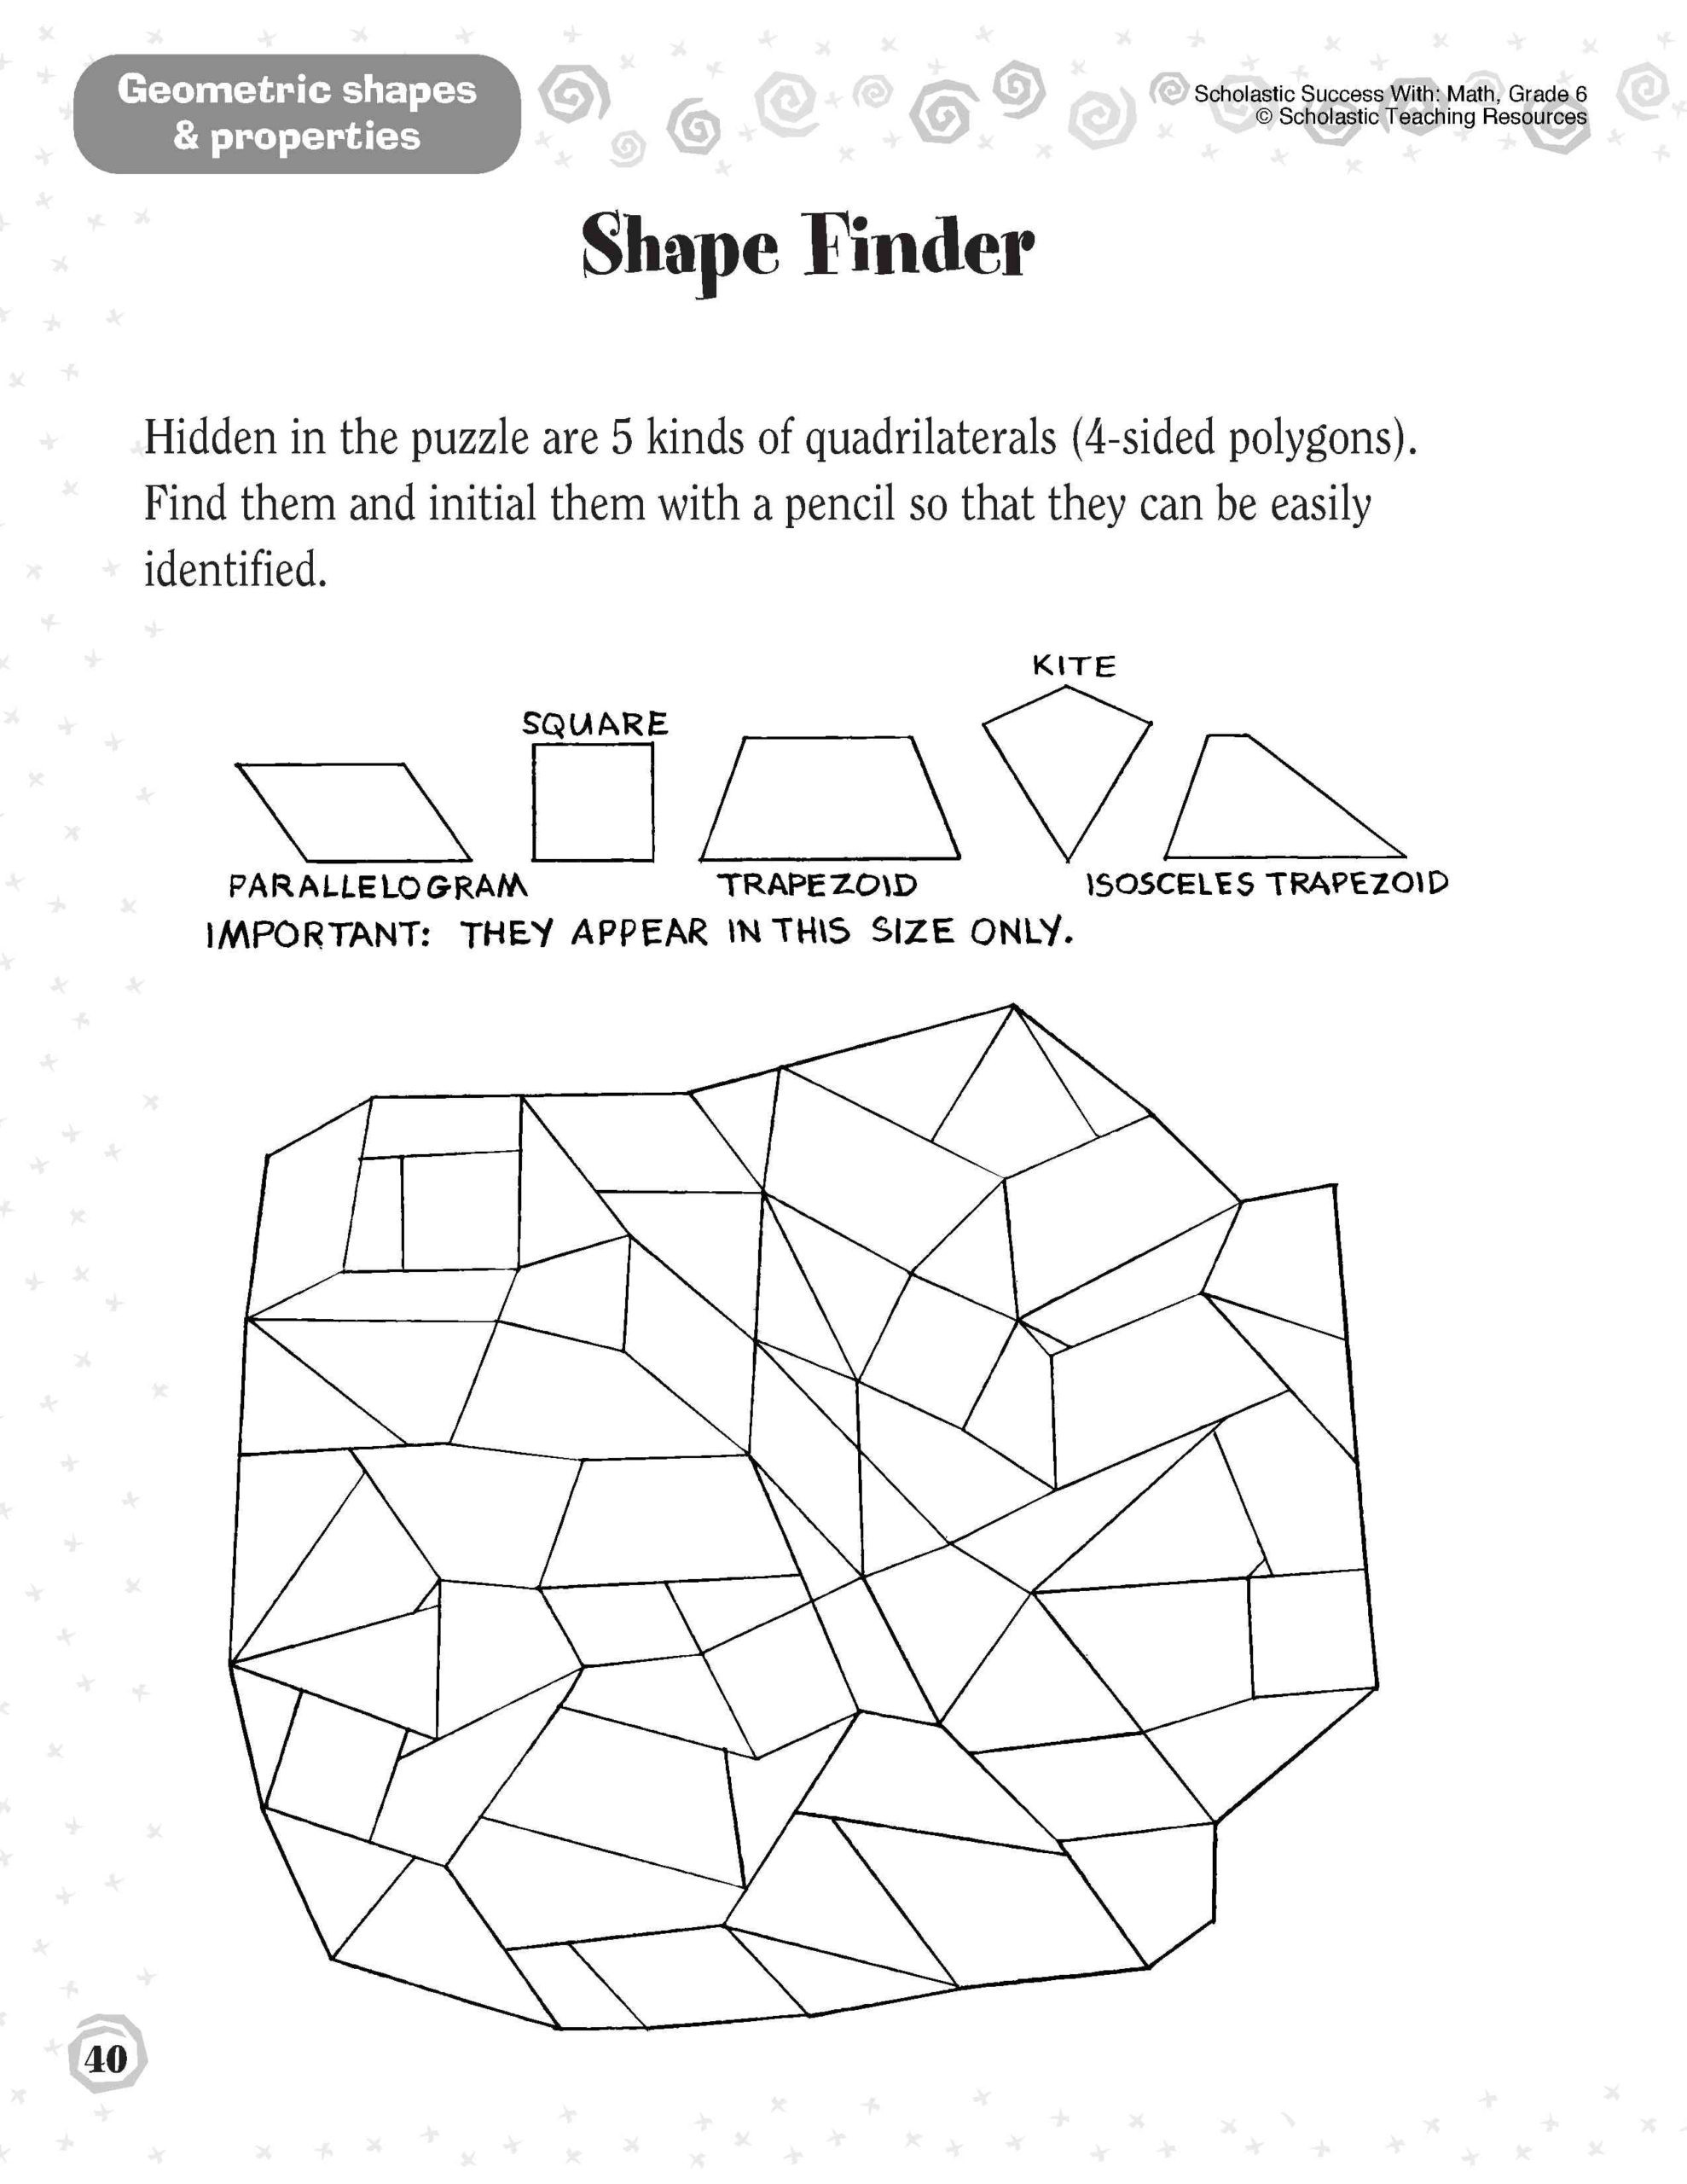 Circle Graphs Worksheets 7th Grade 1st Grade Shapes Worksheet Printable Worksheets and